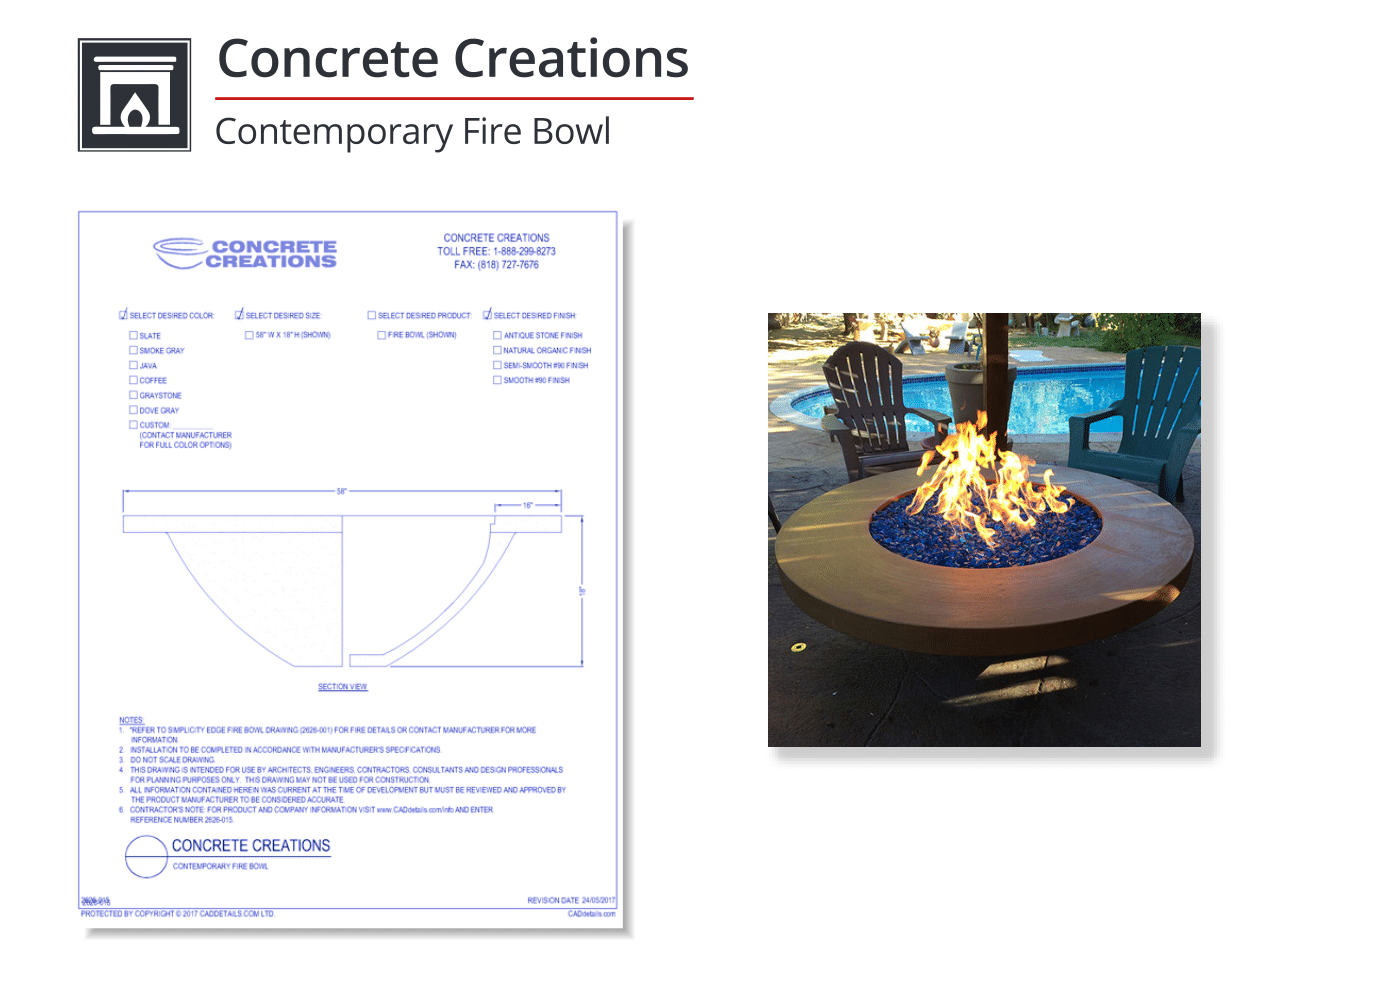 Concrete-Creations-Contemprorary-Fire-Bowl-CADdrawing.png